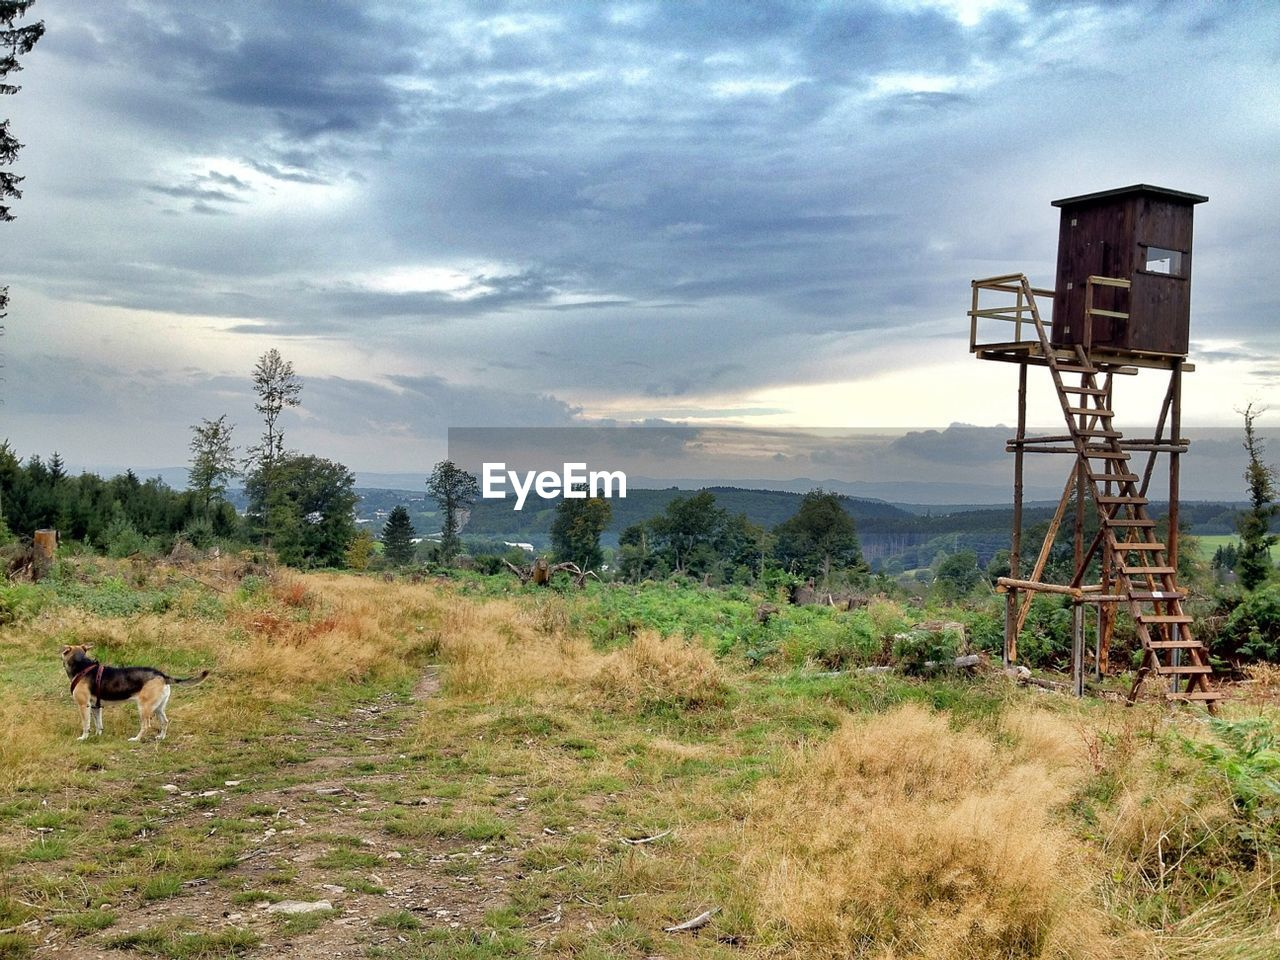 Lookout tower on field